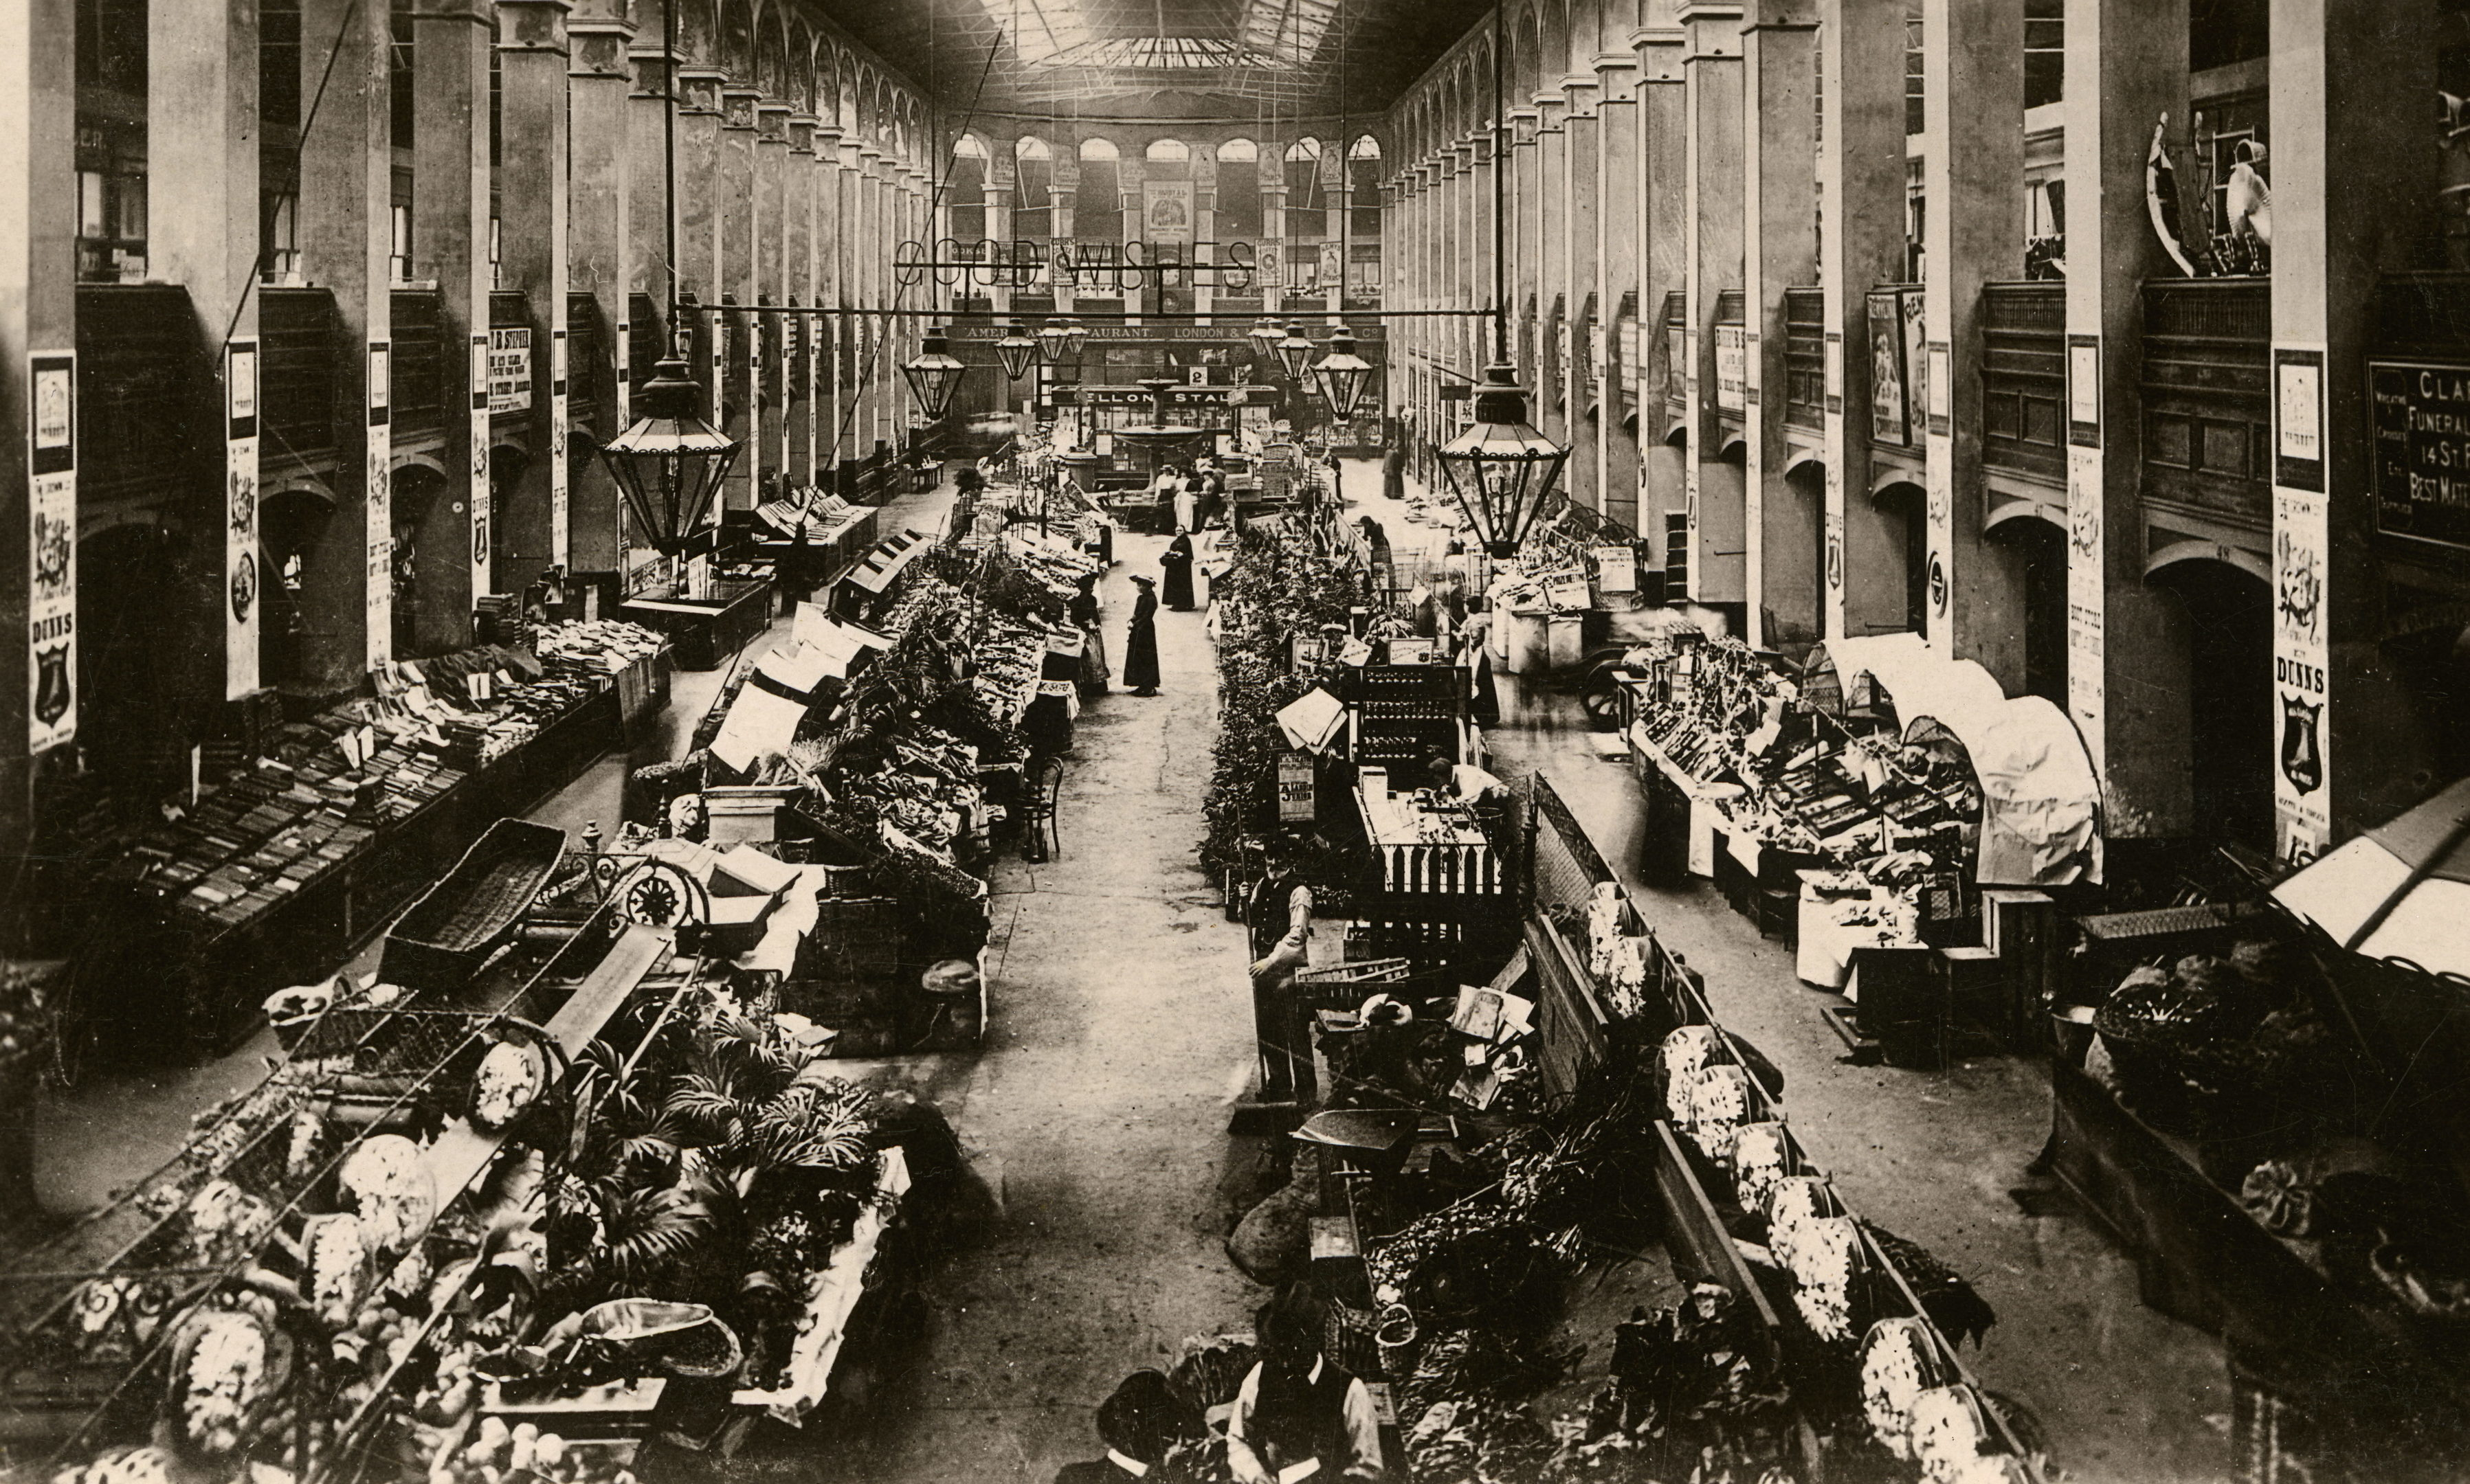 Interior of the New Market